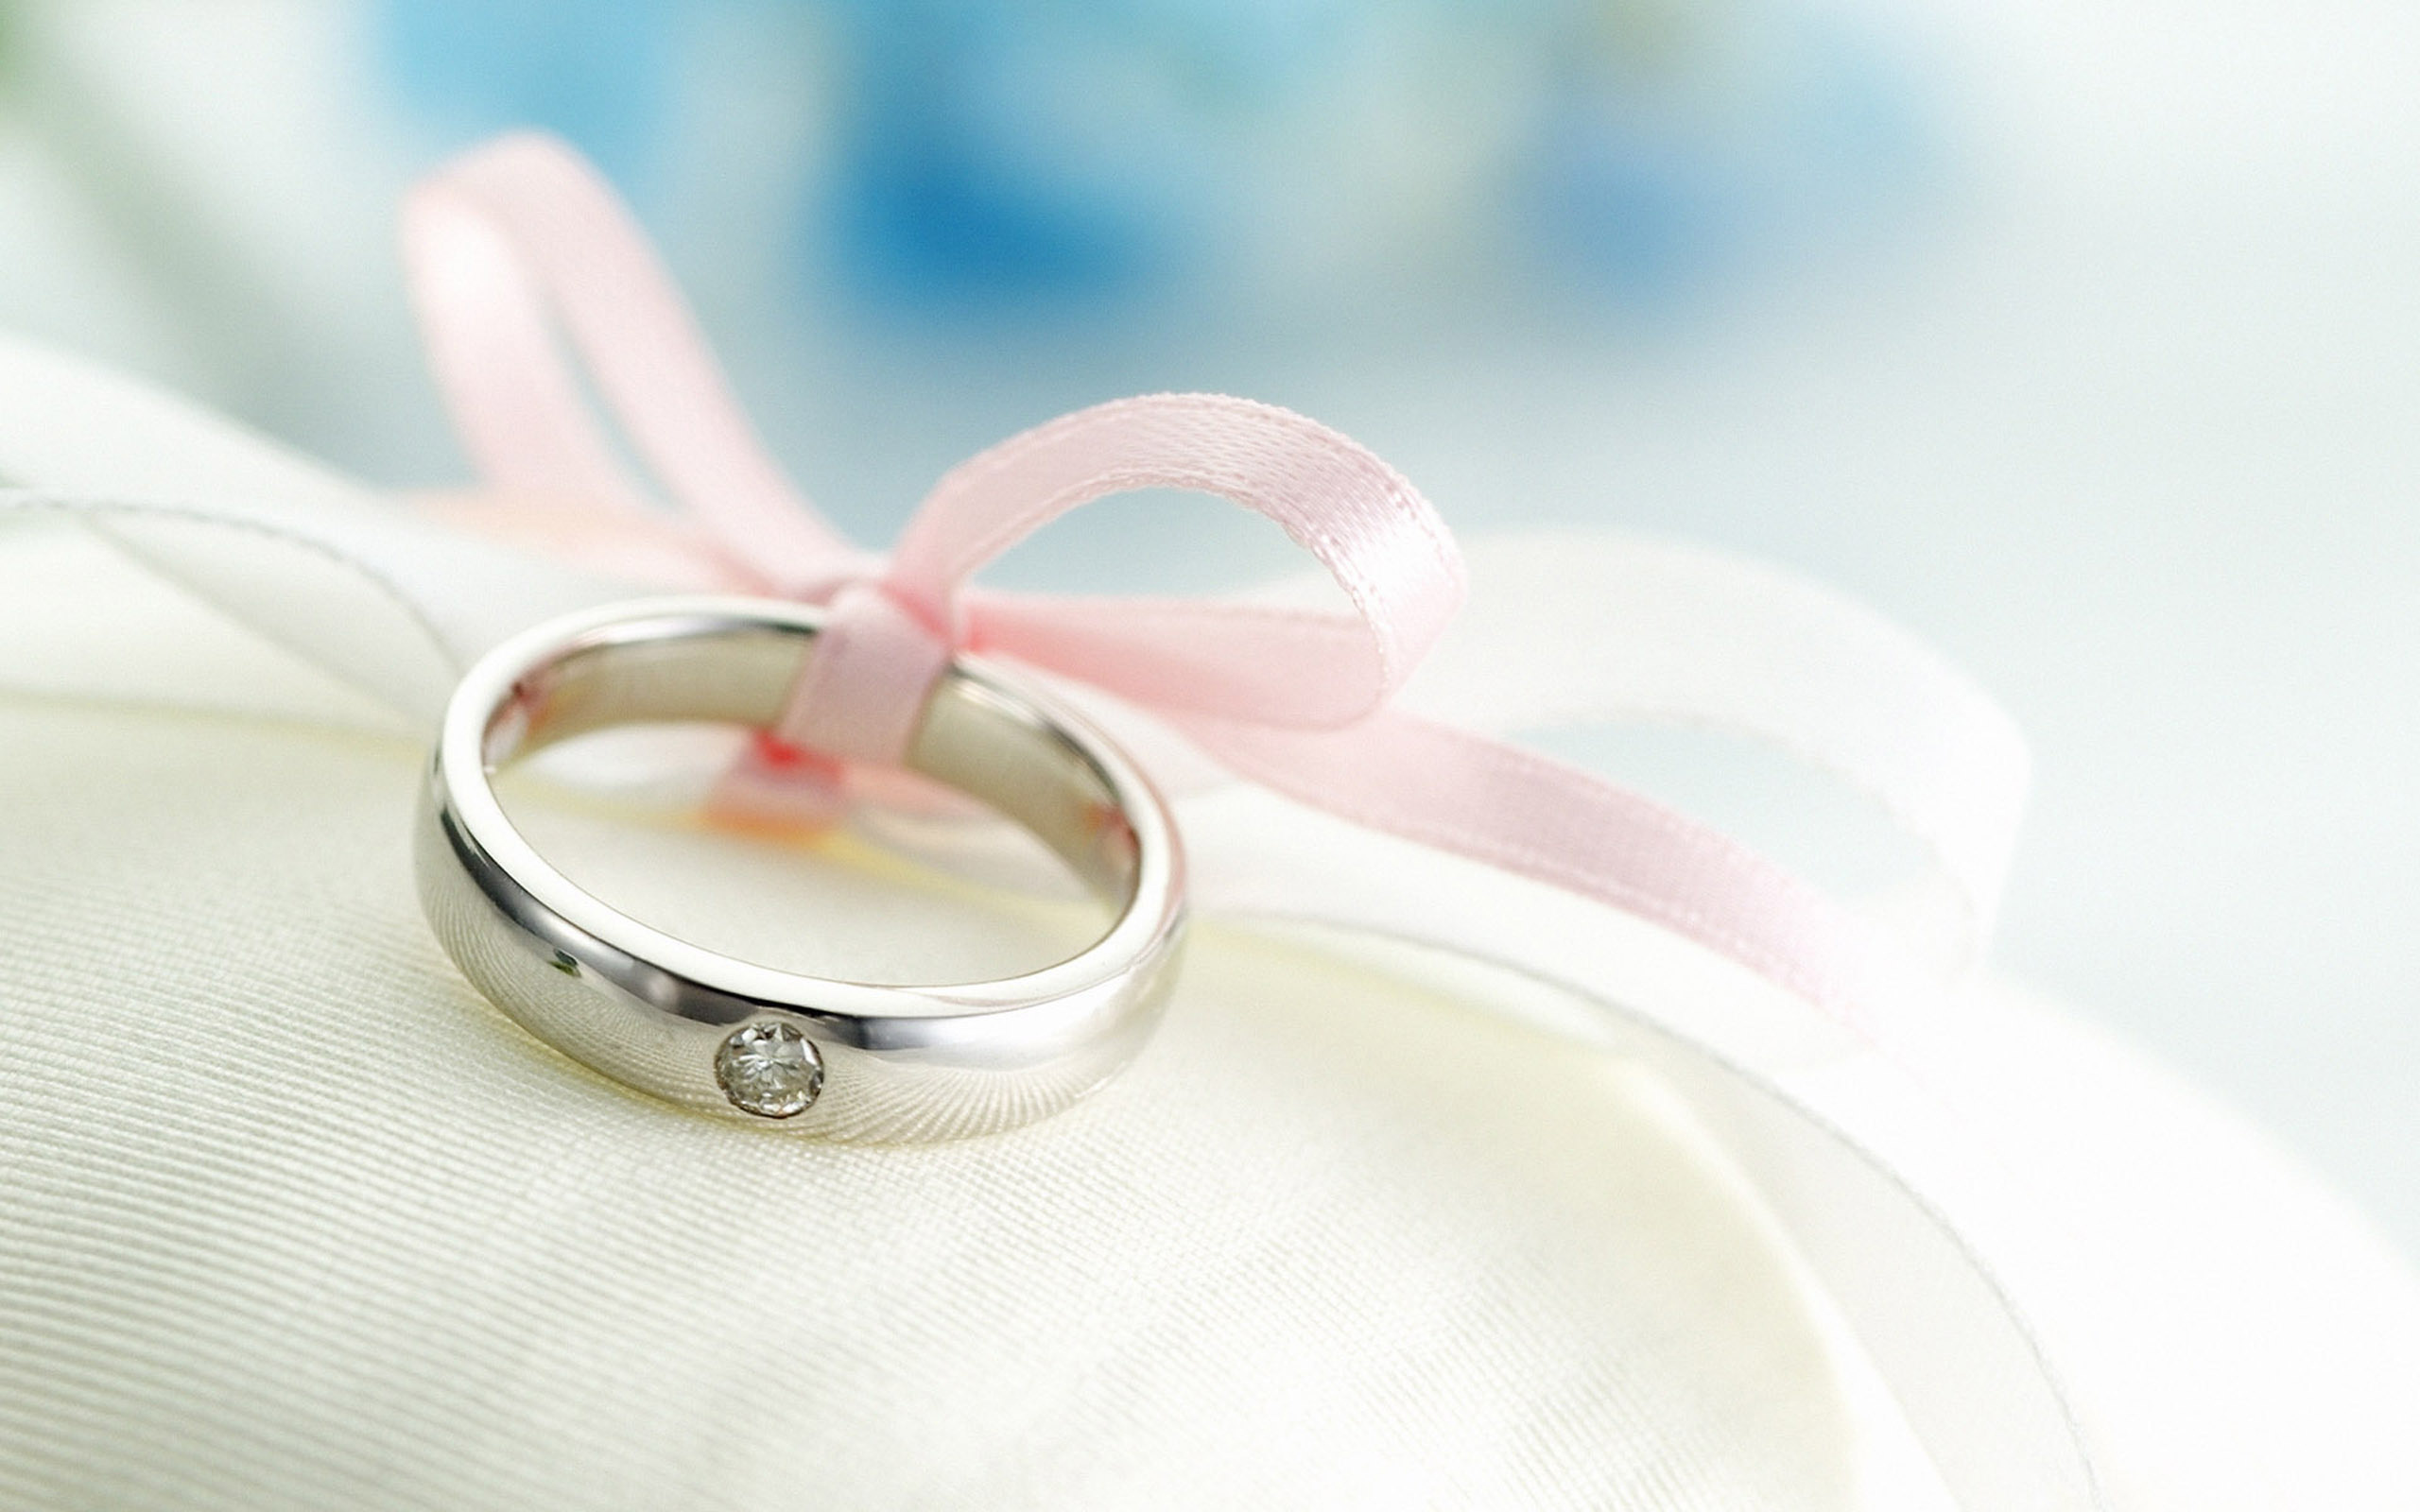 ring, wedding, bow, tenderness